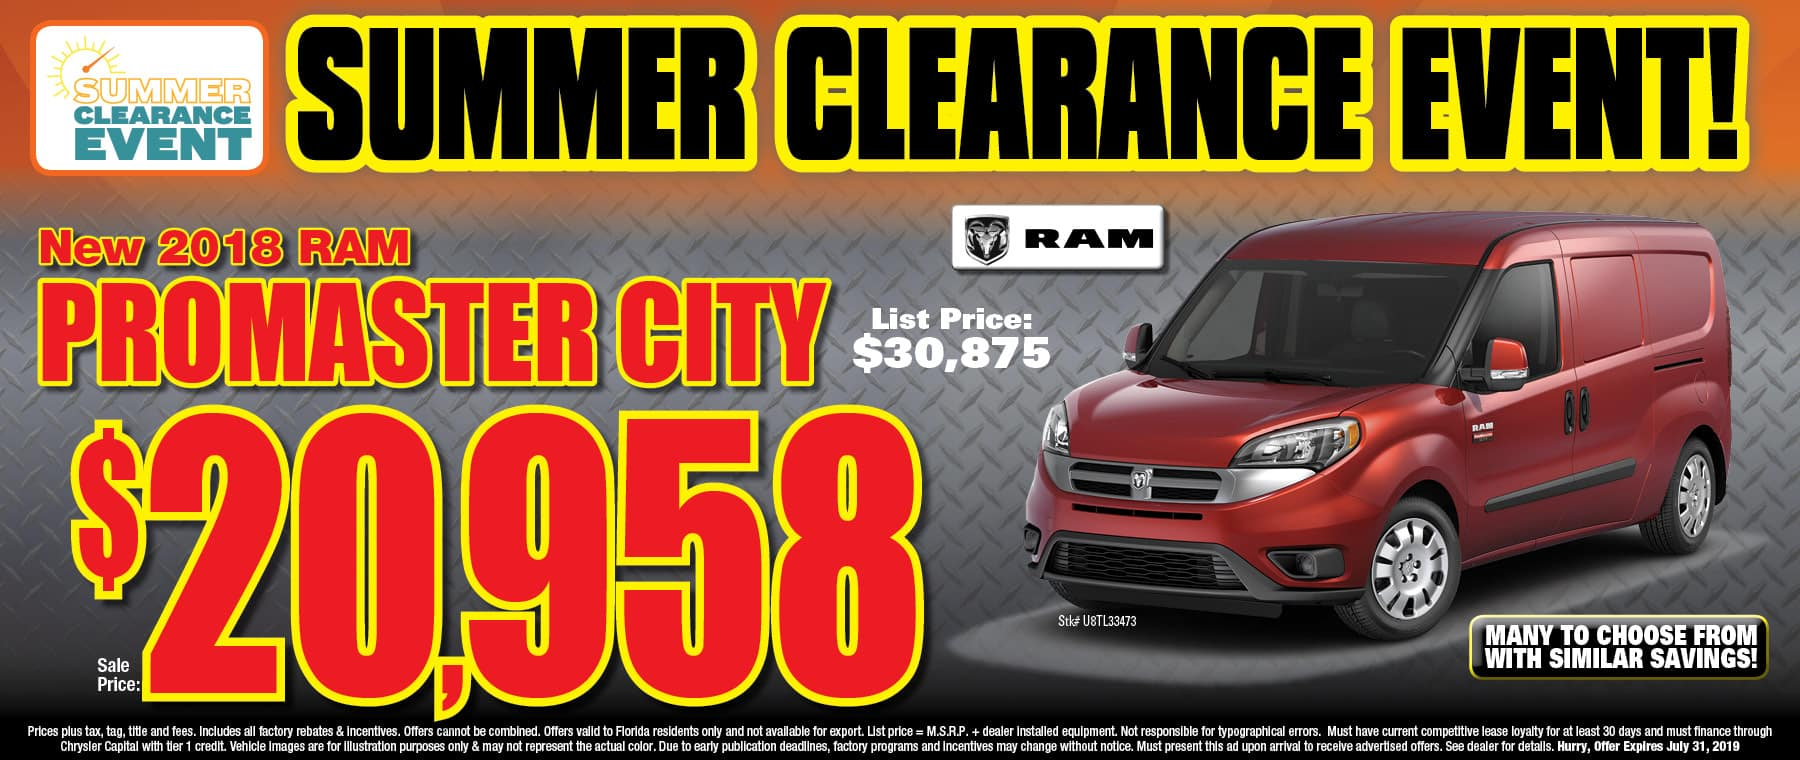 New RAM Promaster City! - Commercial Vehicles at University Dodge RAM!